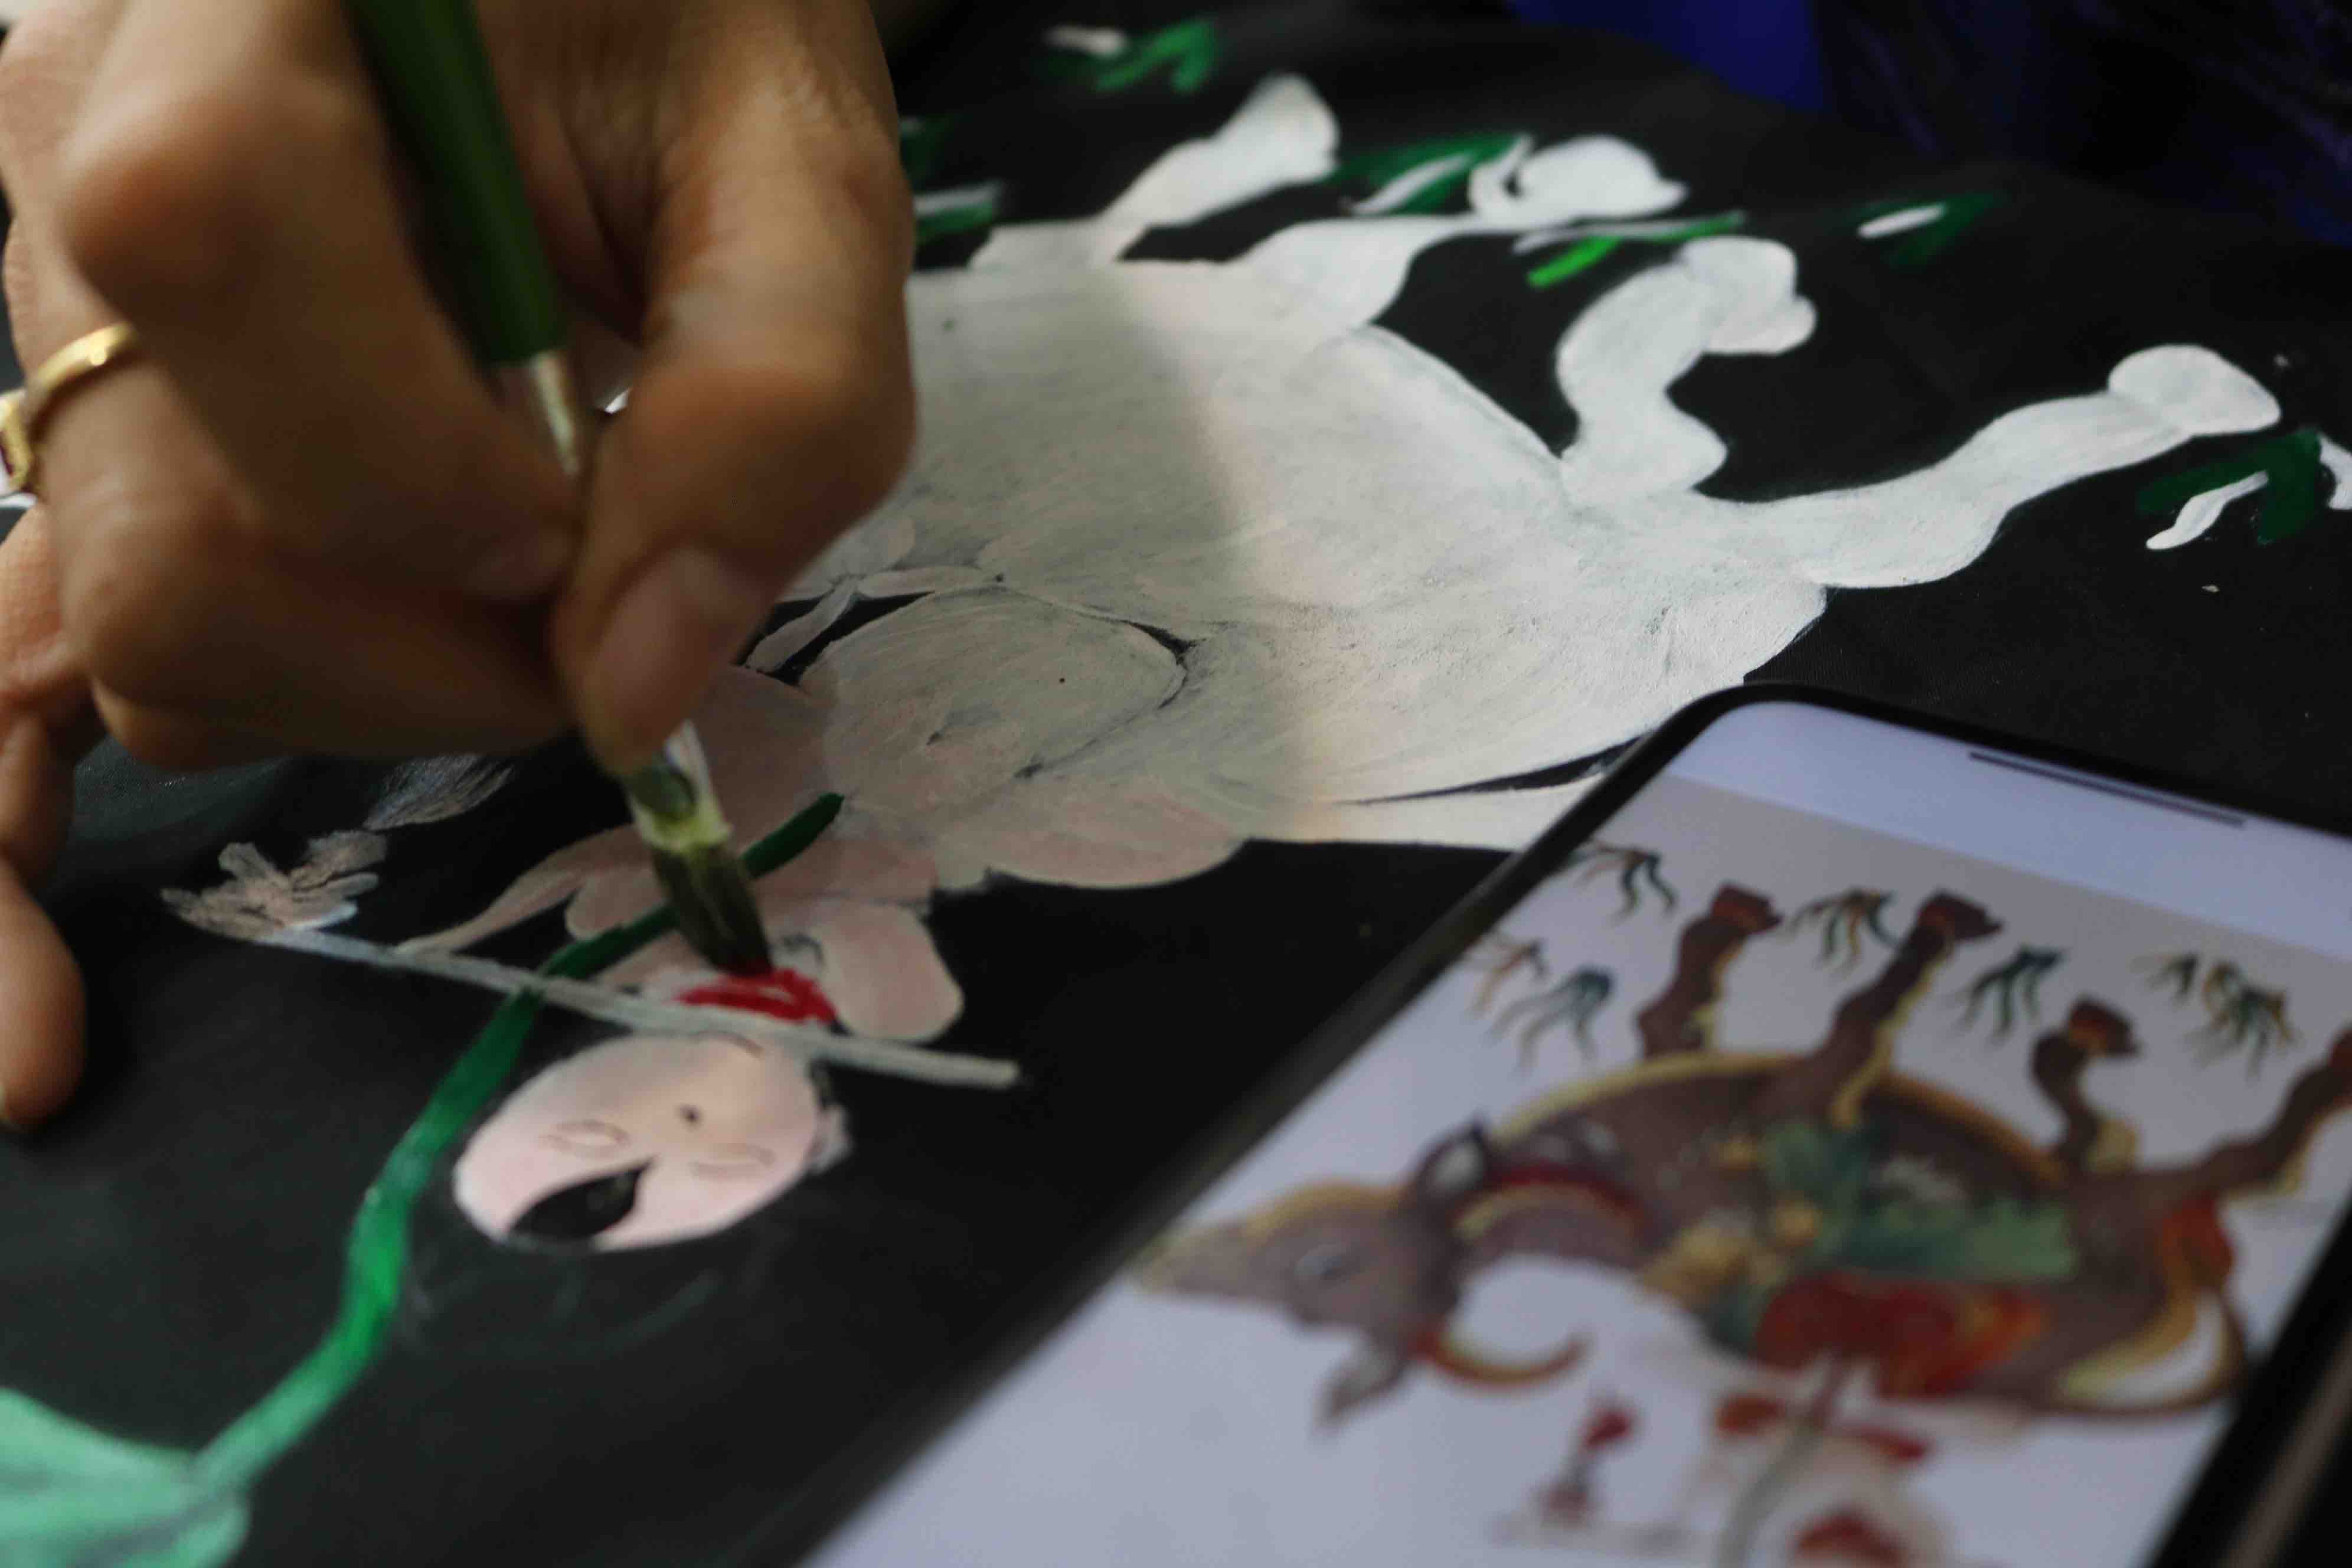 A student decorates an old T-shirt with Dong Ho folk painting pattern at Nguyen Hai Kim's workshop in Phu Nhuan District, Ho Chi Minh City. Photo: Hoang An / Tuoi Tre